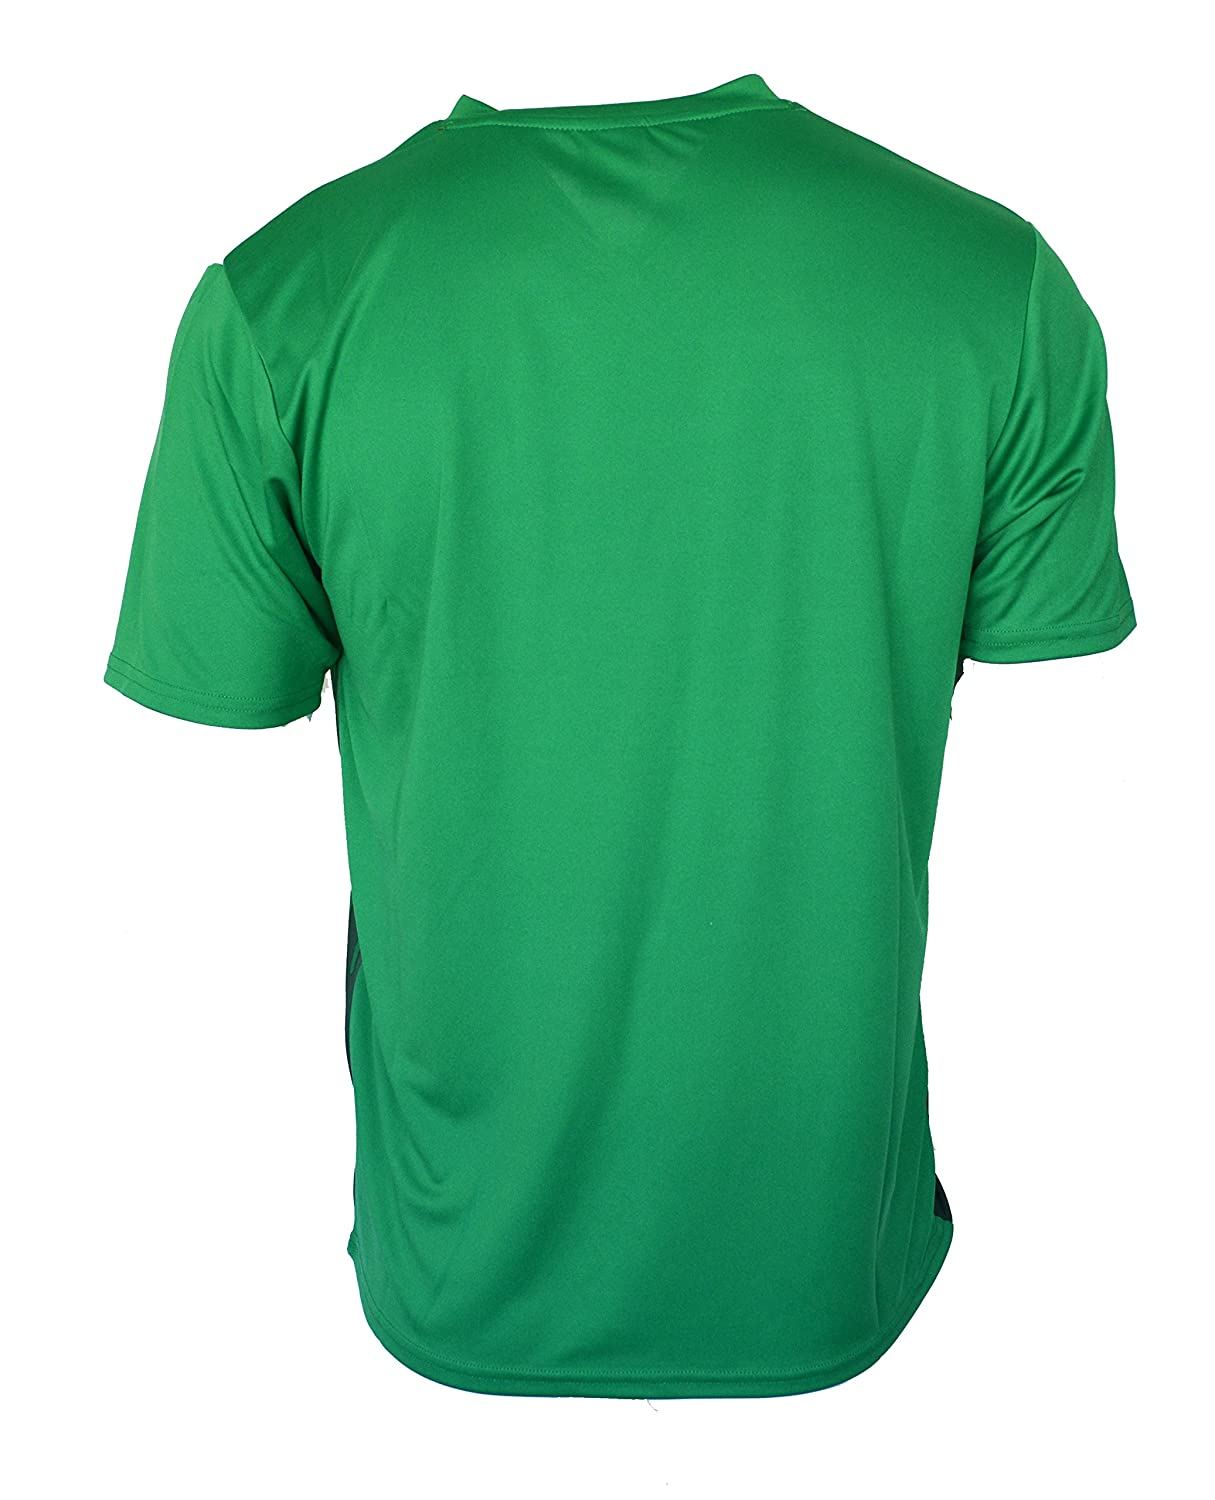 db3c37257 Amazon.com : Pana Mexico Soccer Jersey Flag Mexican Adult Training Custom  Name and Number : Clothing